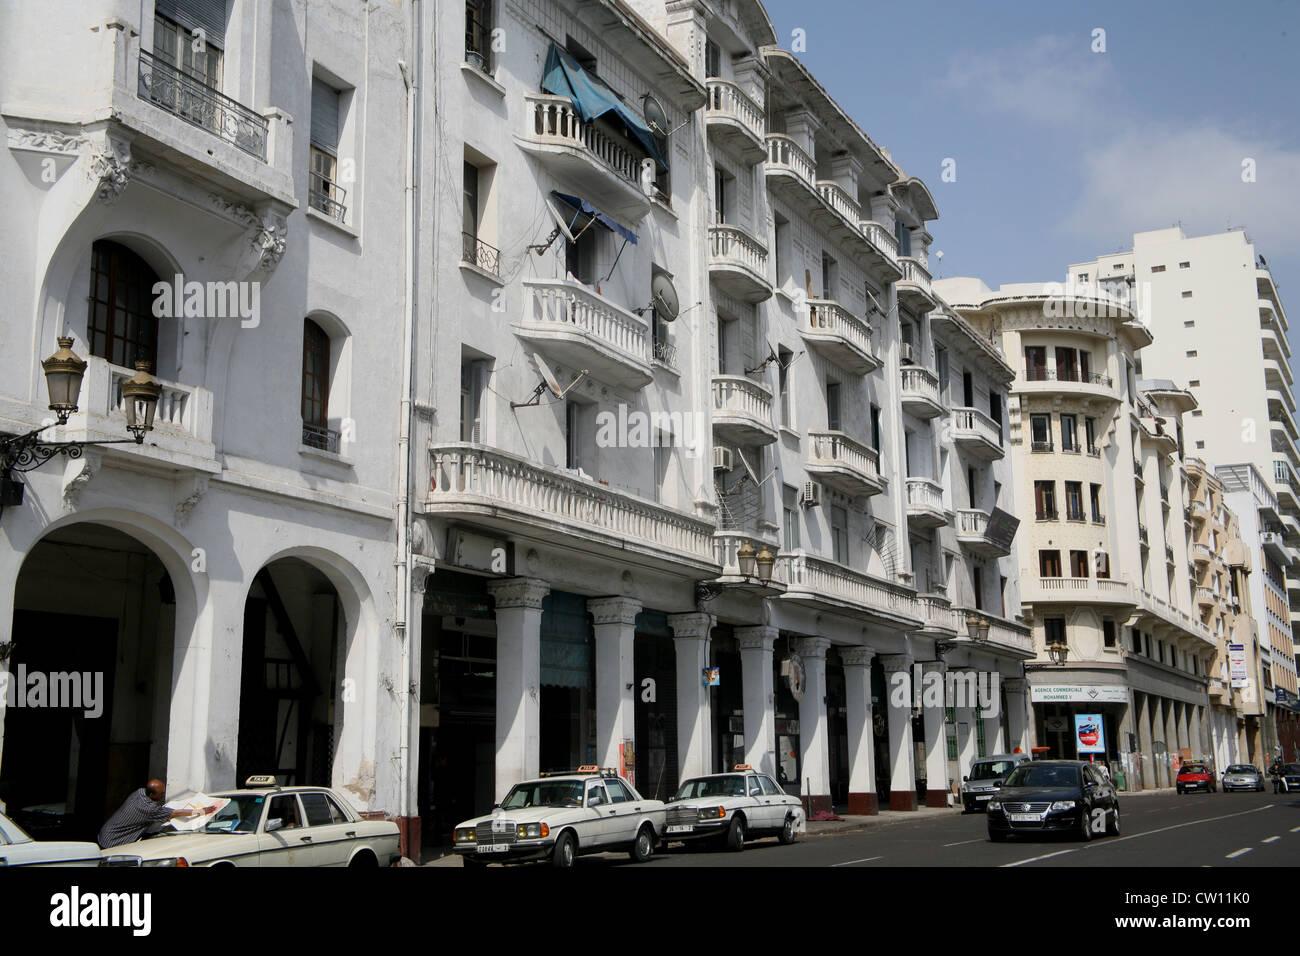 1930s architecture buildings on the Boulevard V Casablanca Morocco - Stock Image